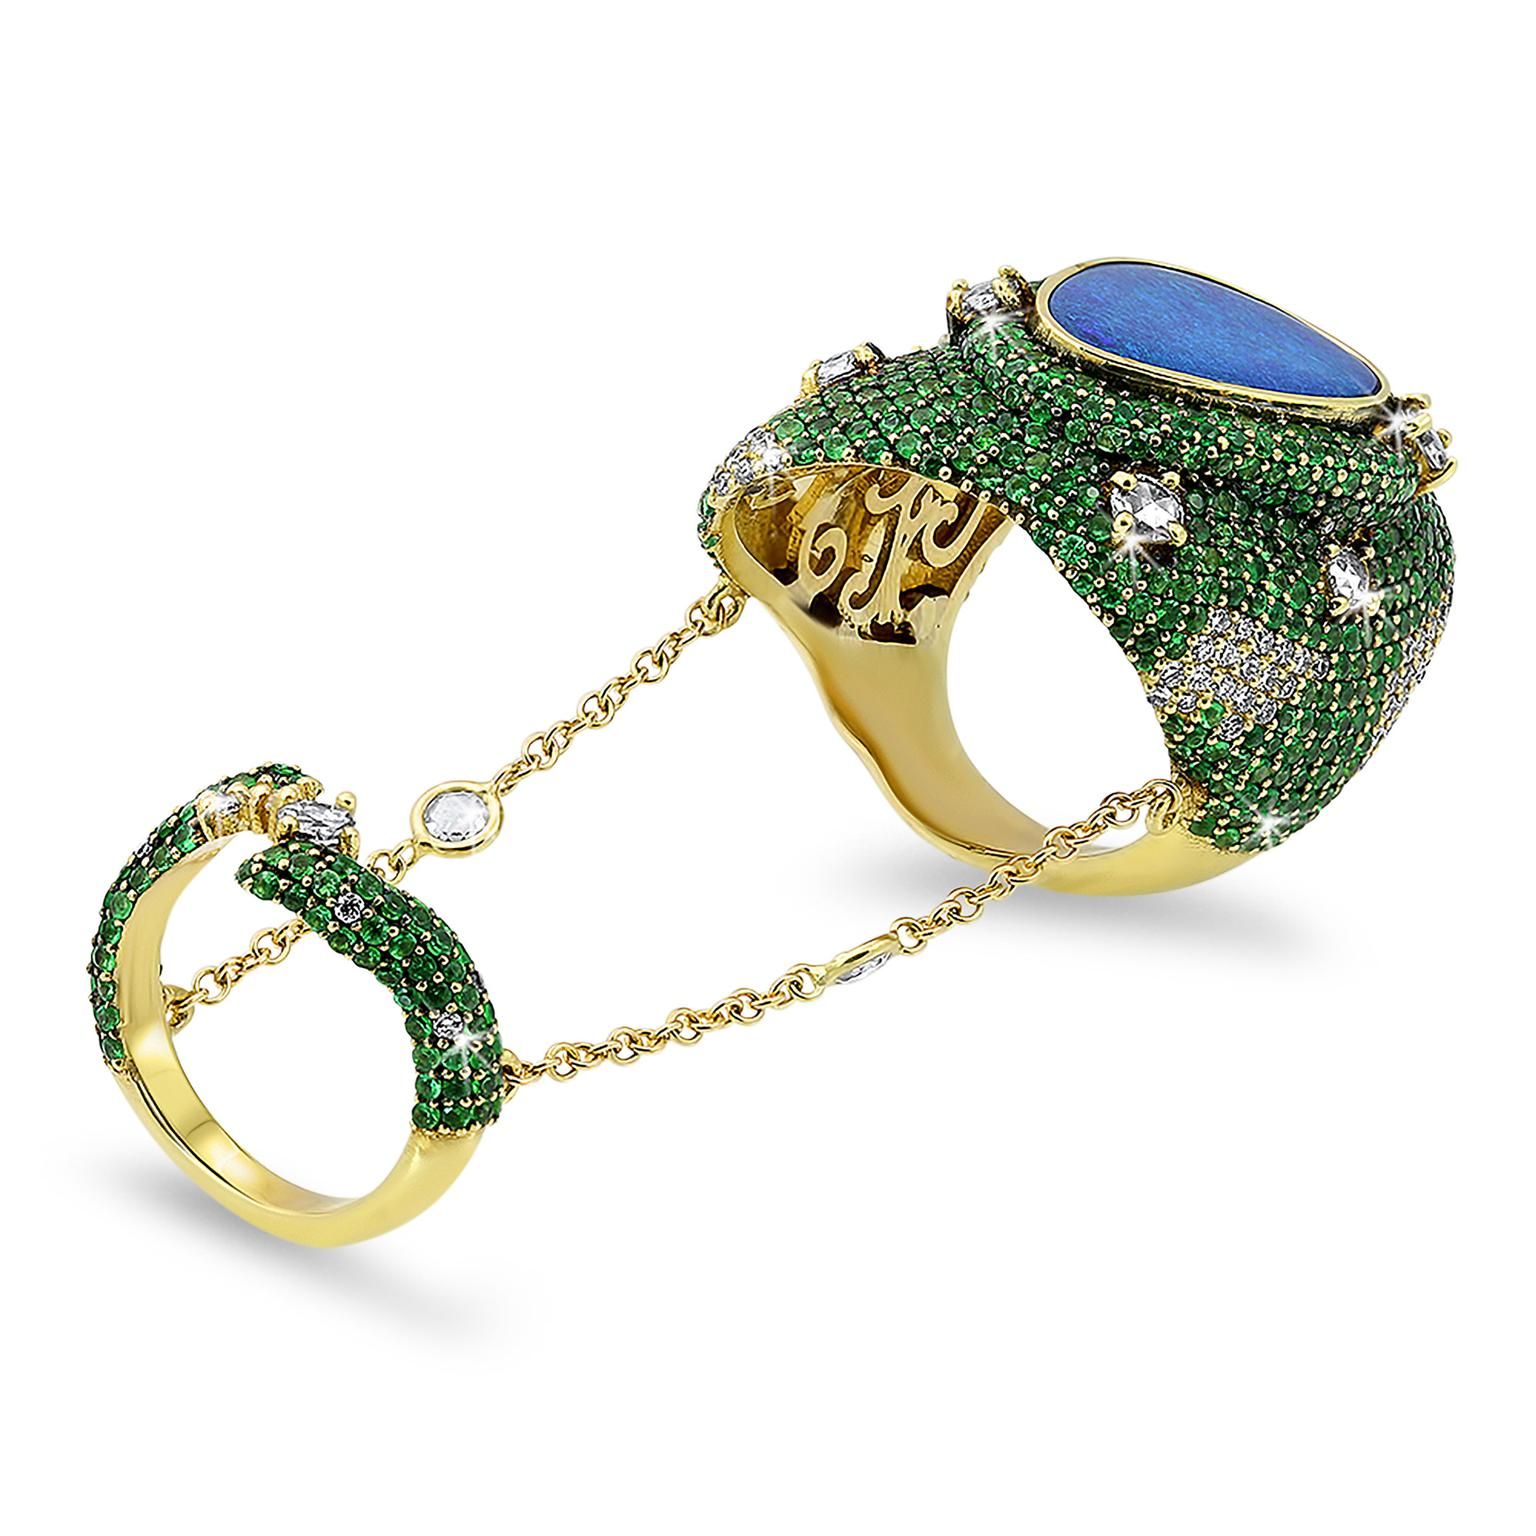 Michael John tsavorite and opal chain ring